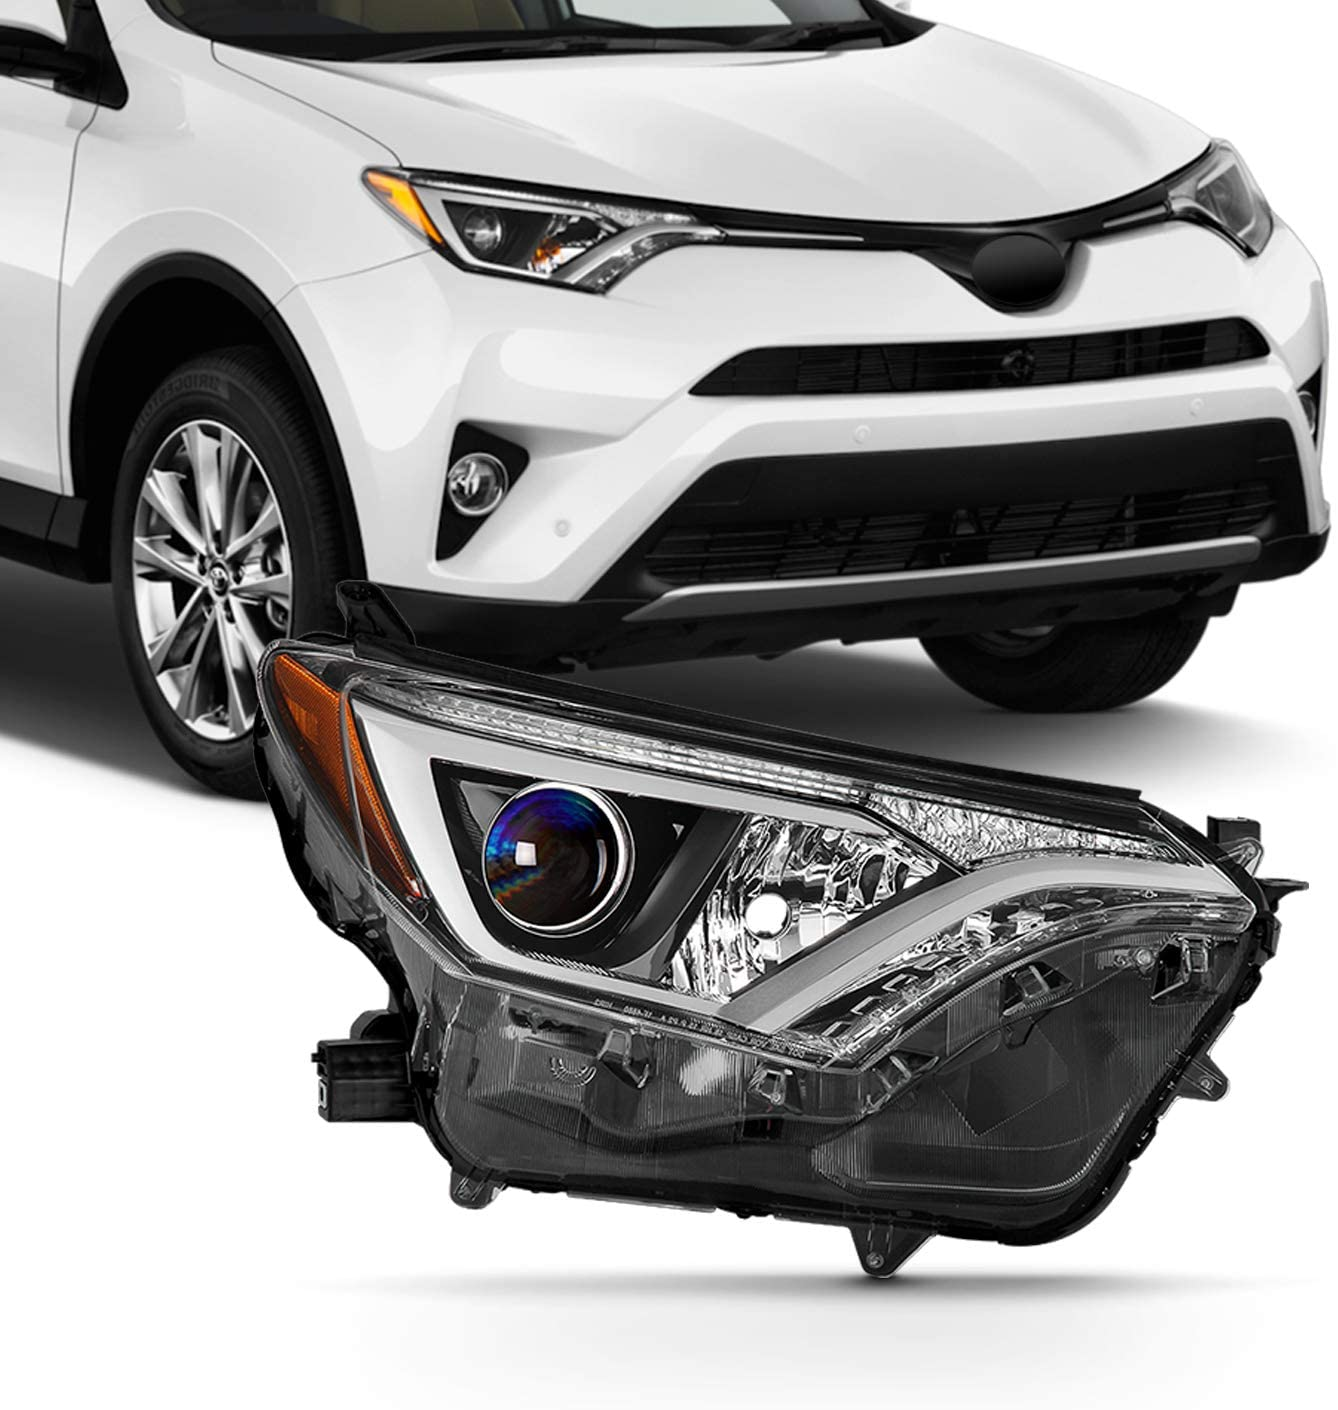 Fits 2016 2017 2018 Toyota Rav4 [Tube Bar] Halogen Type Projector Headlight Passenger Right Side Replacement